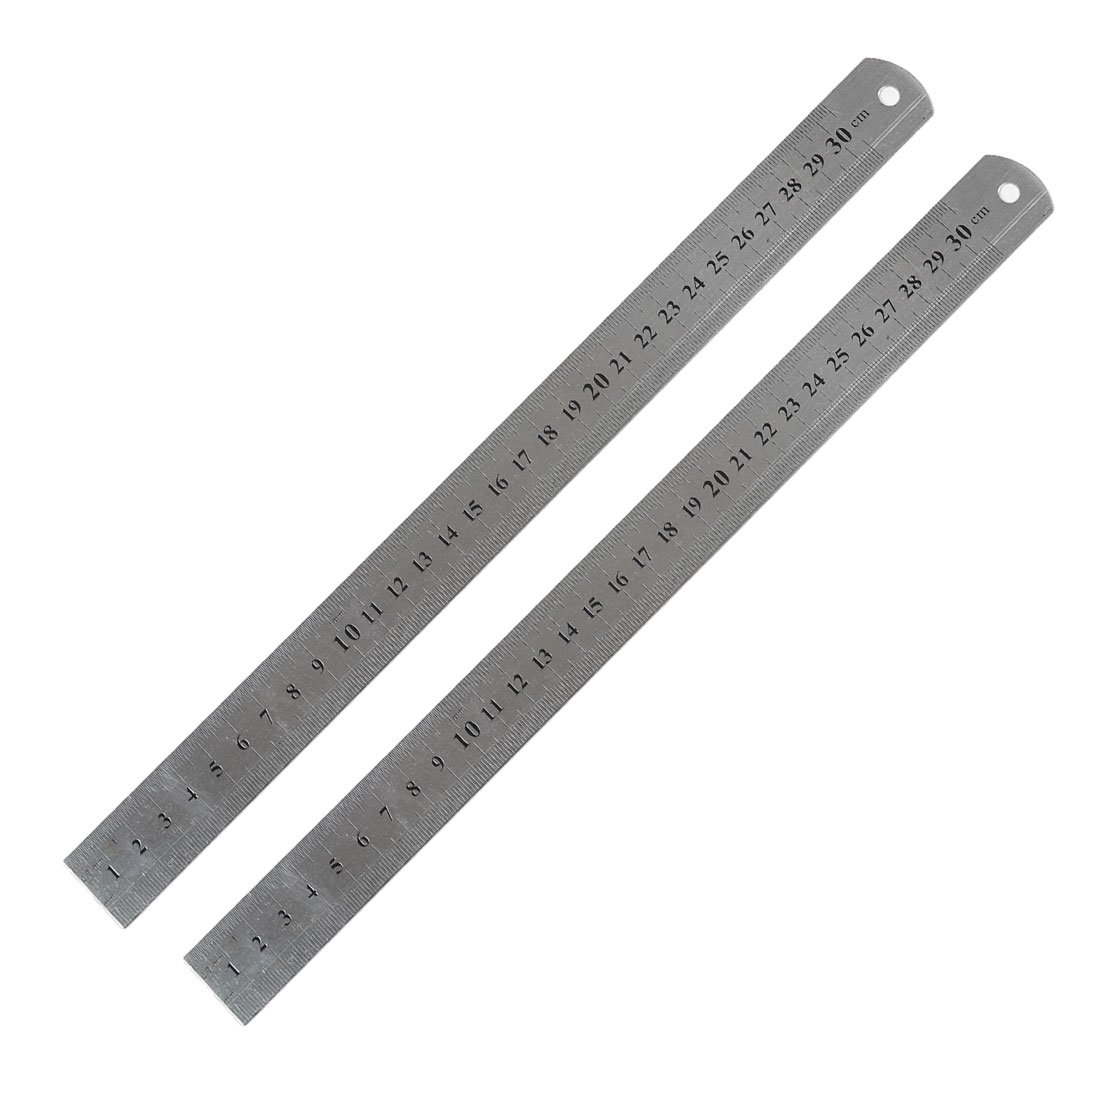 PPYY NEW -2 Pcs Metric 30cm Stainless Steel Straight Ruler Measuring Tool 12